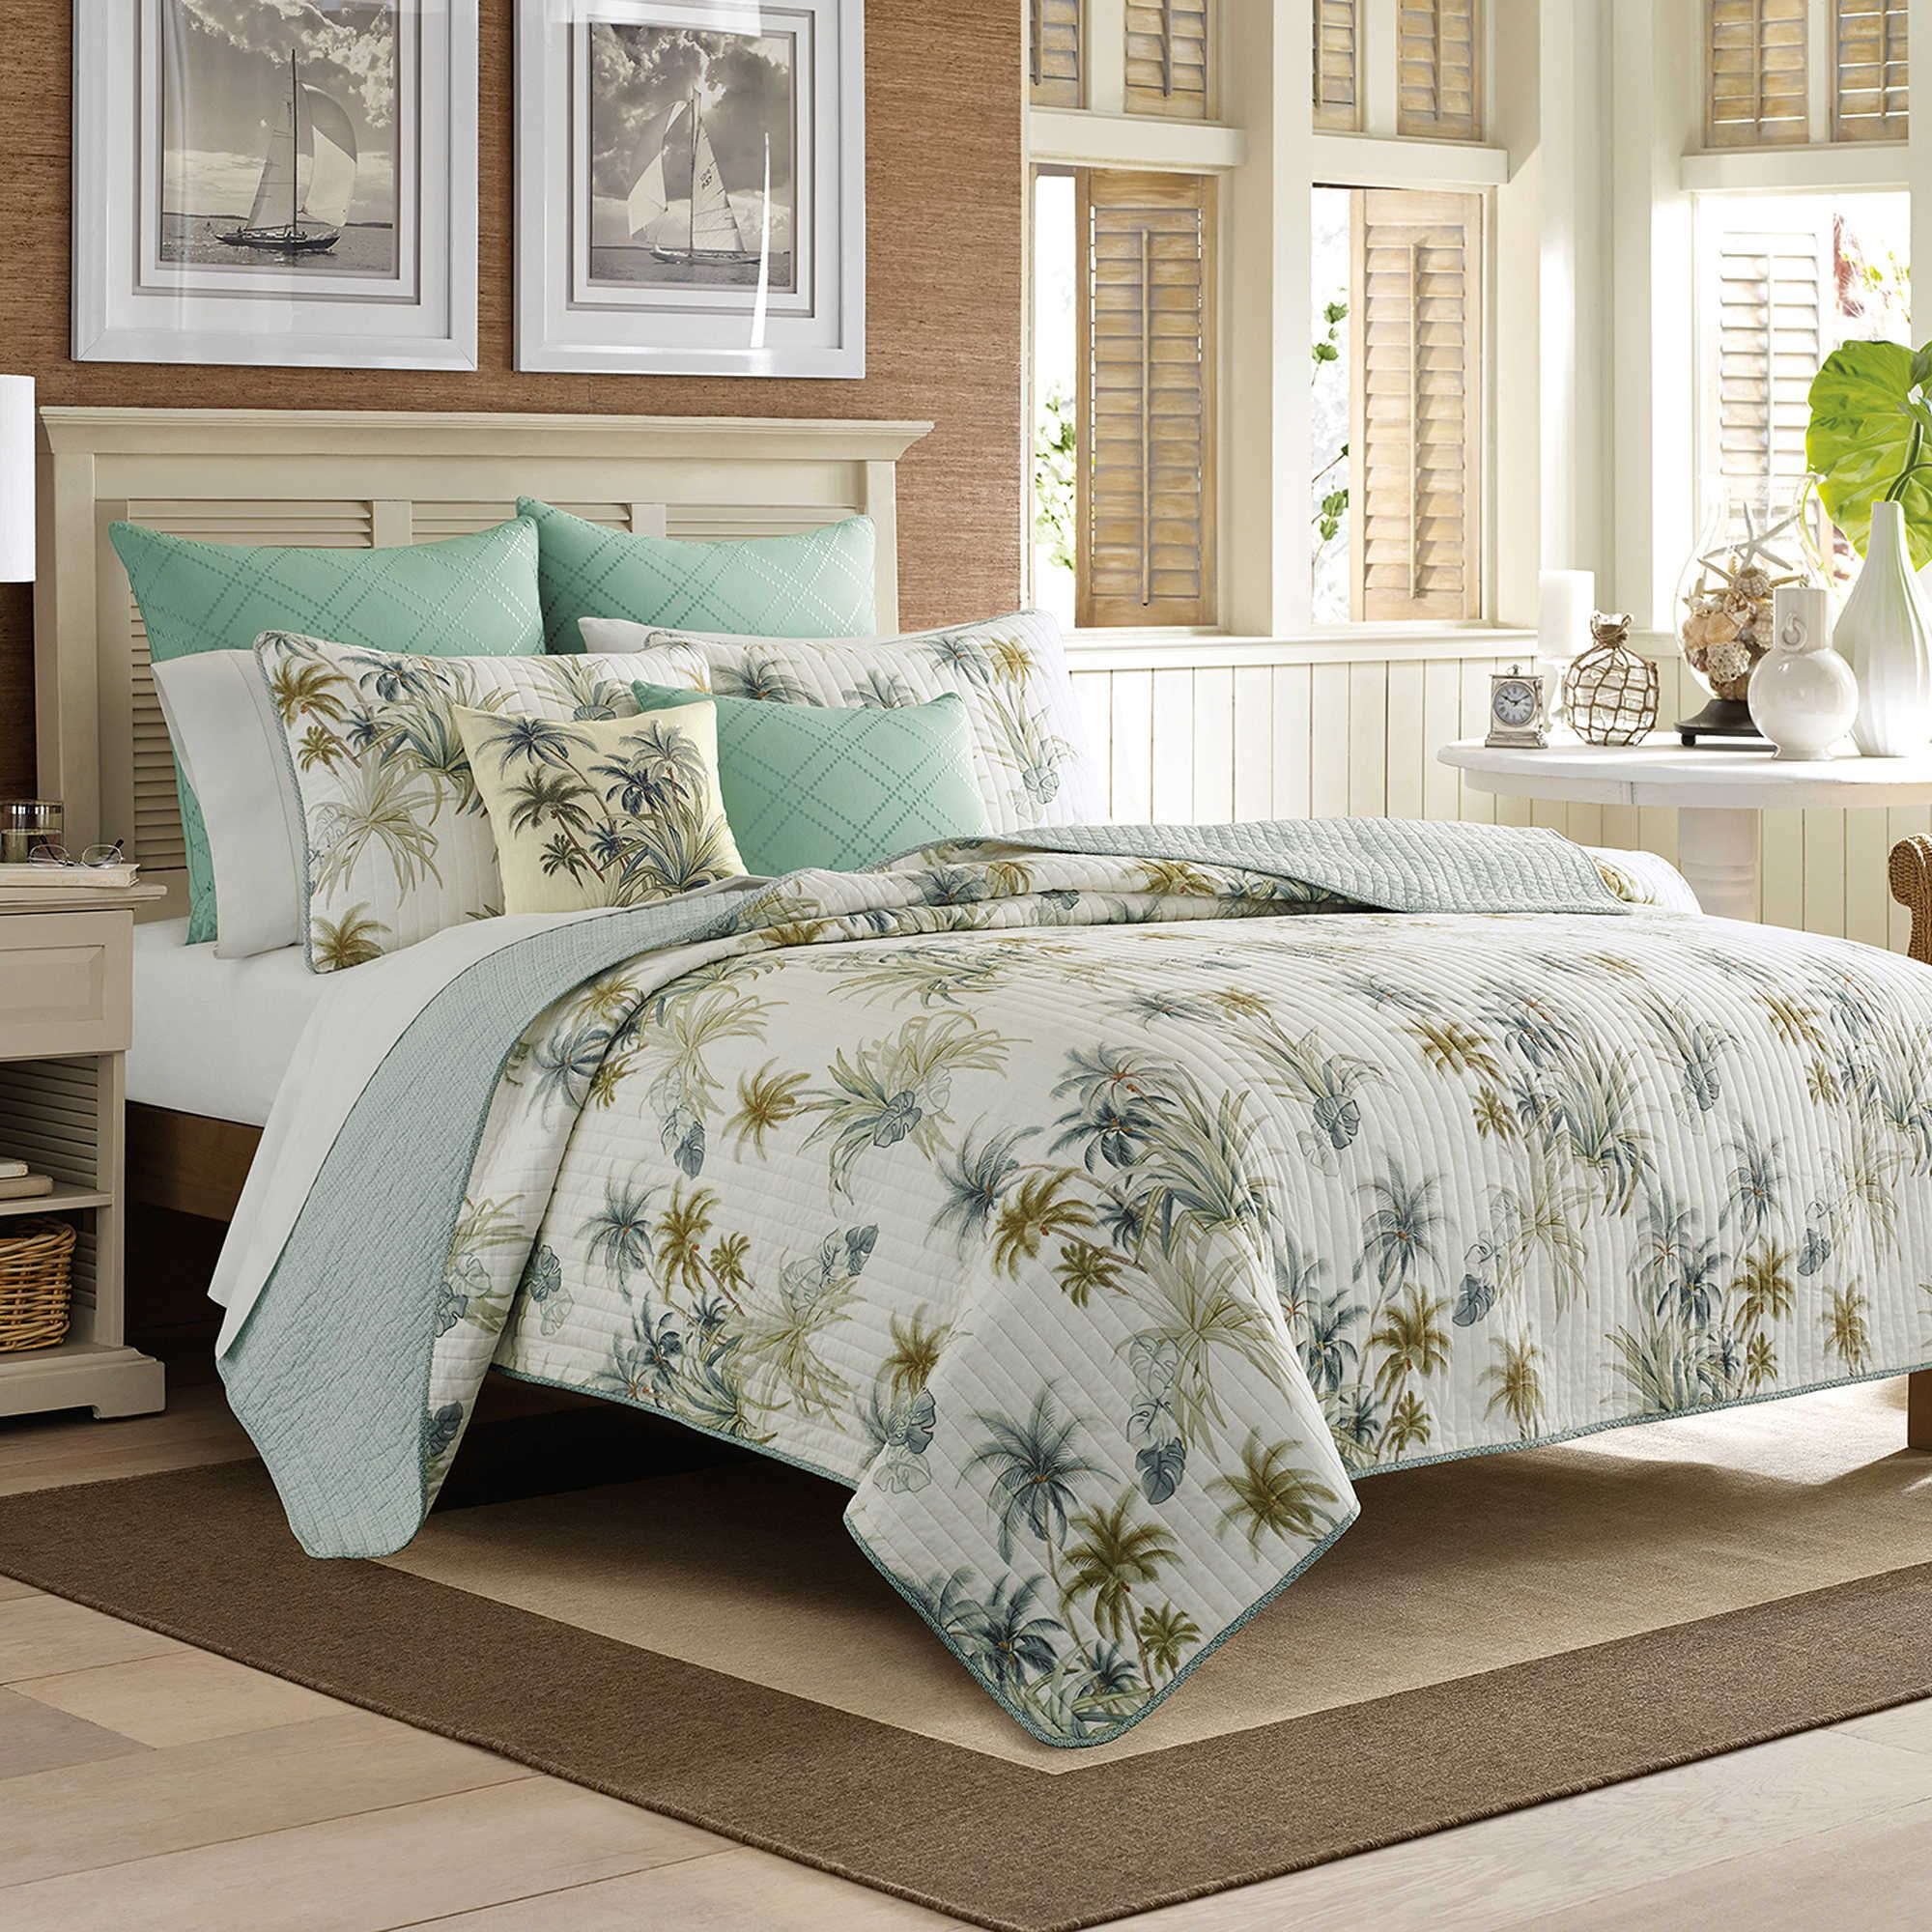 the bed to tranquility bedding cover pin bring your pottery flirt dkny barns romantic of with duvet sea paisley a barn